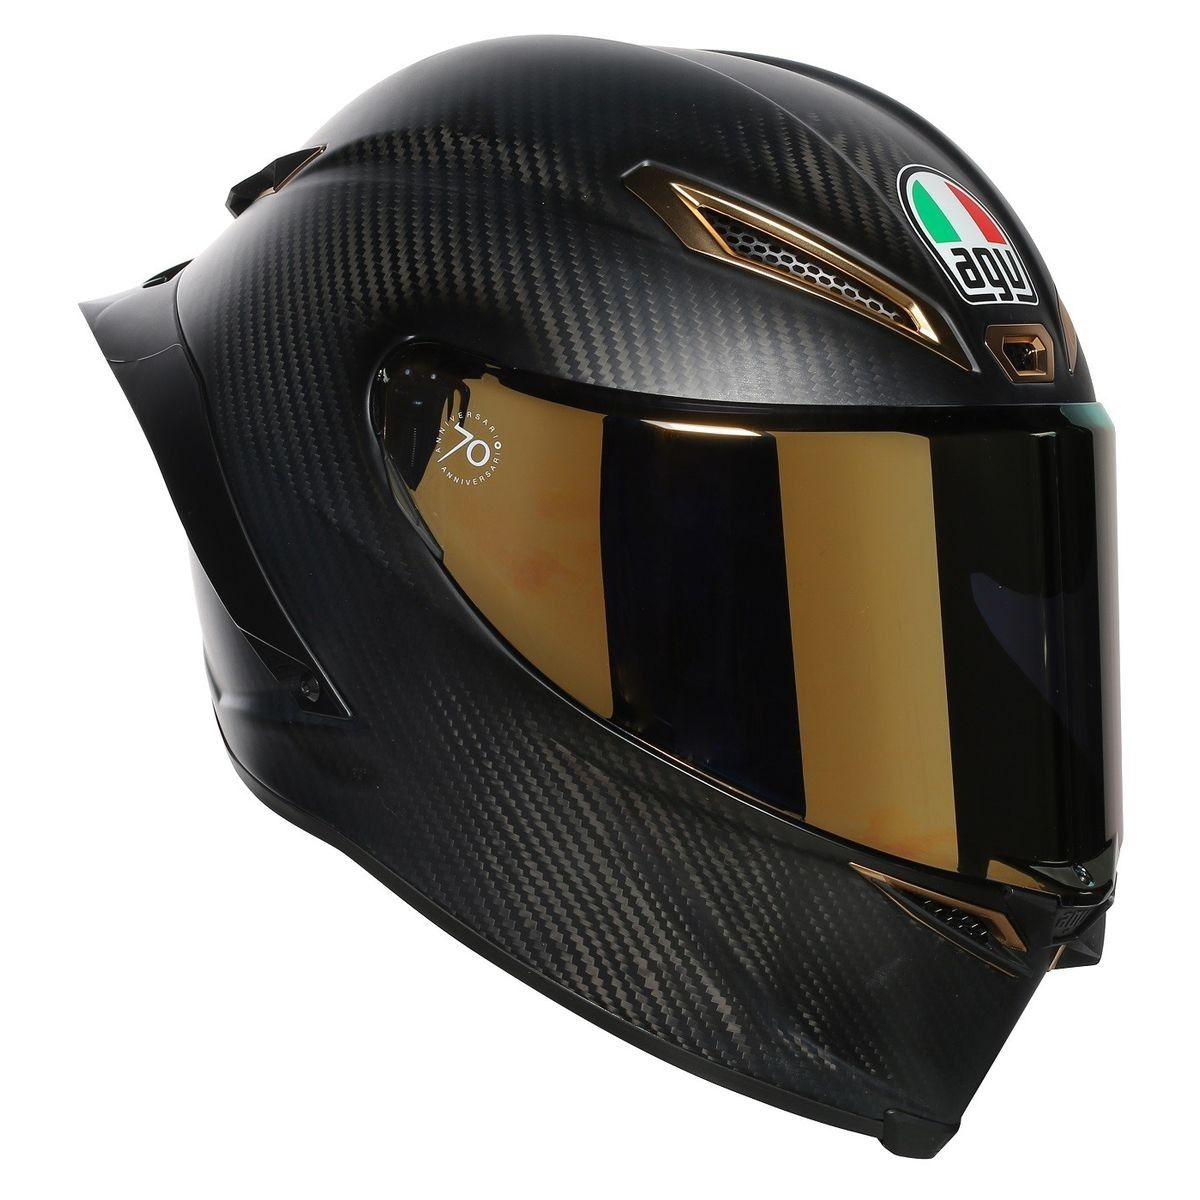 Pin by manos baumer on motorhelmen pinterest helmets and be60a12e0fc7855186b8454e967b3bf0g thecheapjerseys Image collections